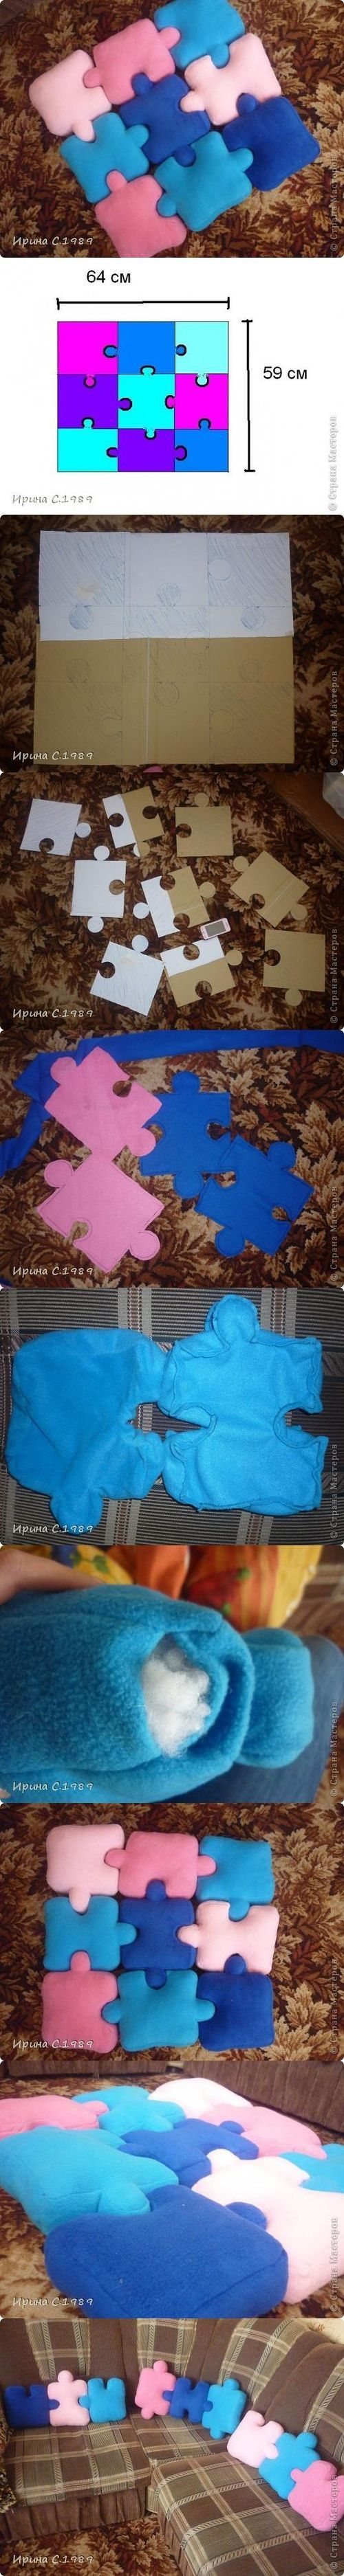 DIY Puzzle Pillows DIY Projects